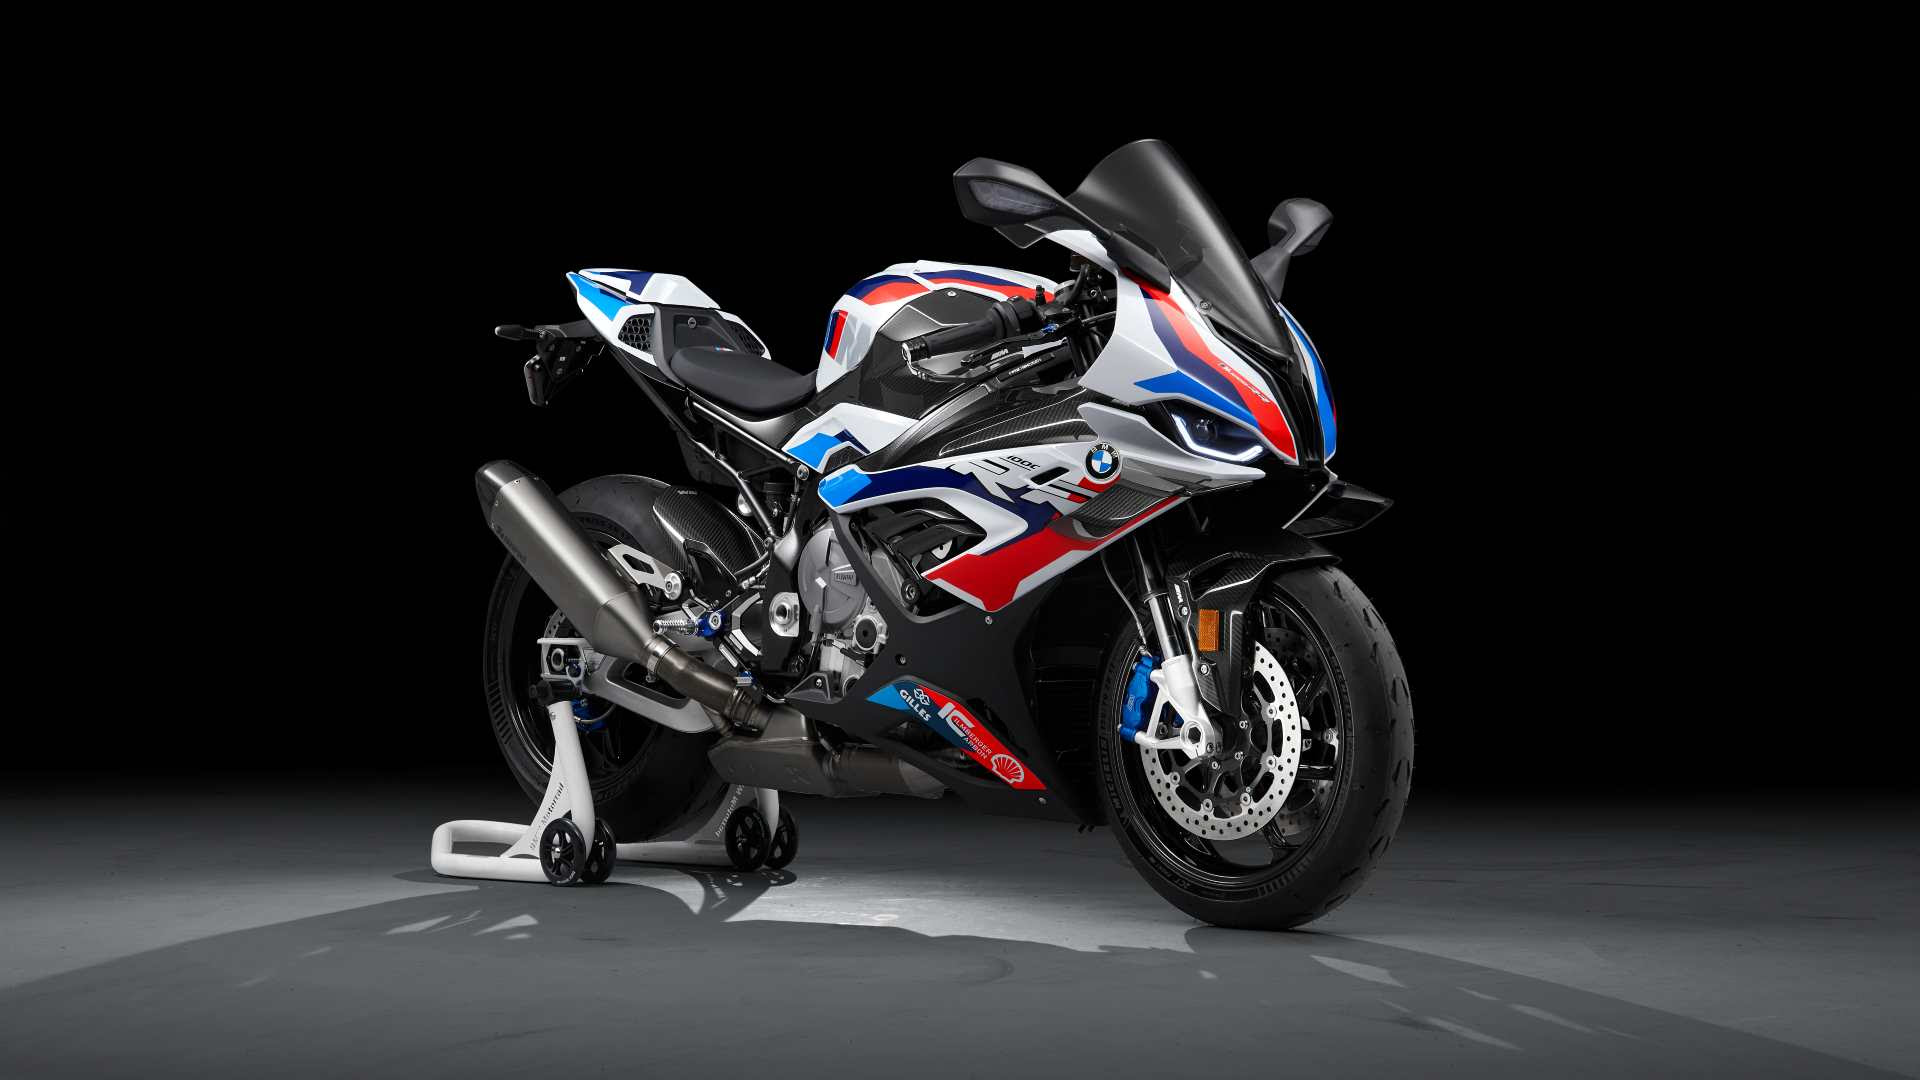 The M1000RR wears carbonfibre winglets that provide higher aerodynamic downforce (16.3 kg at 299 kph). Image: BMW Motorrad